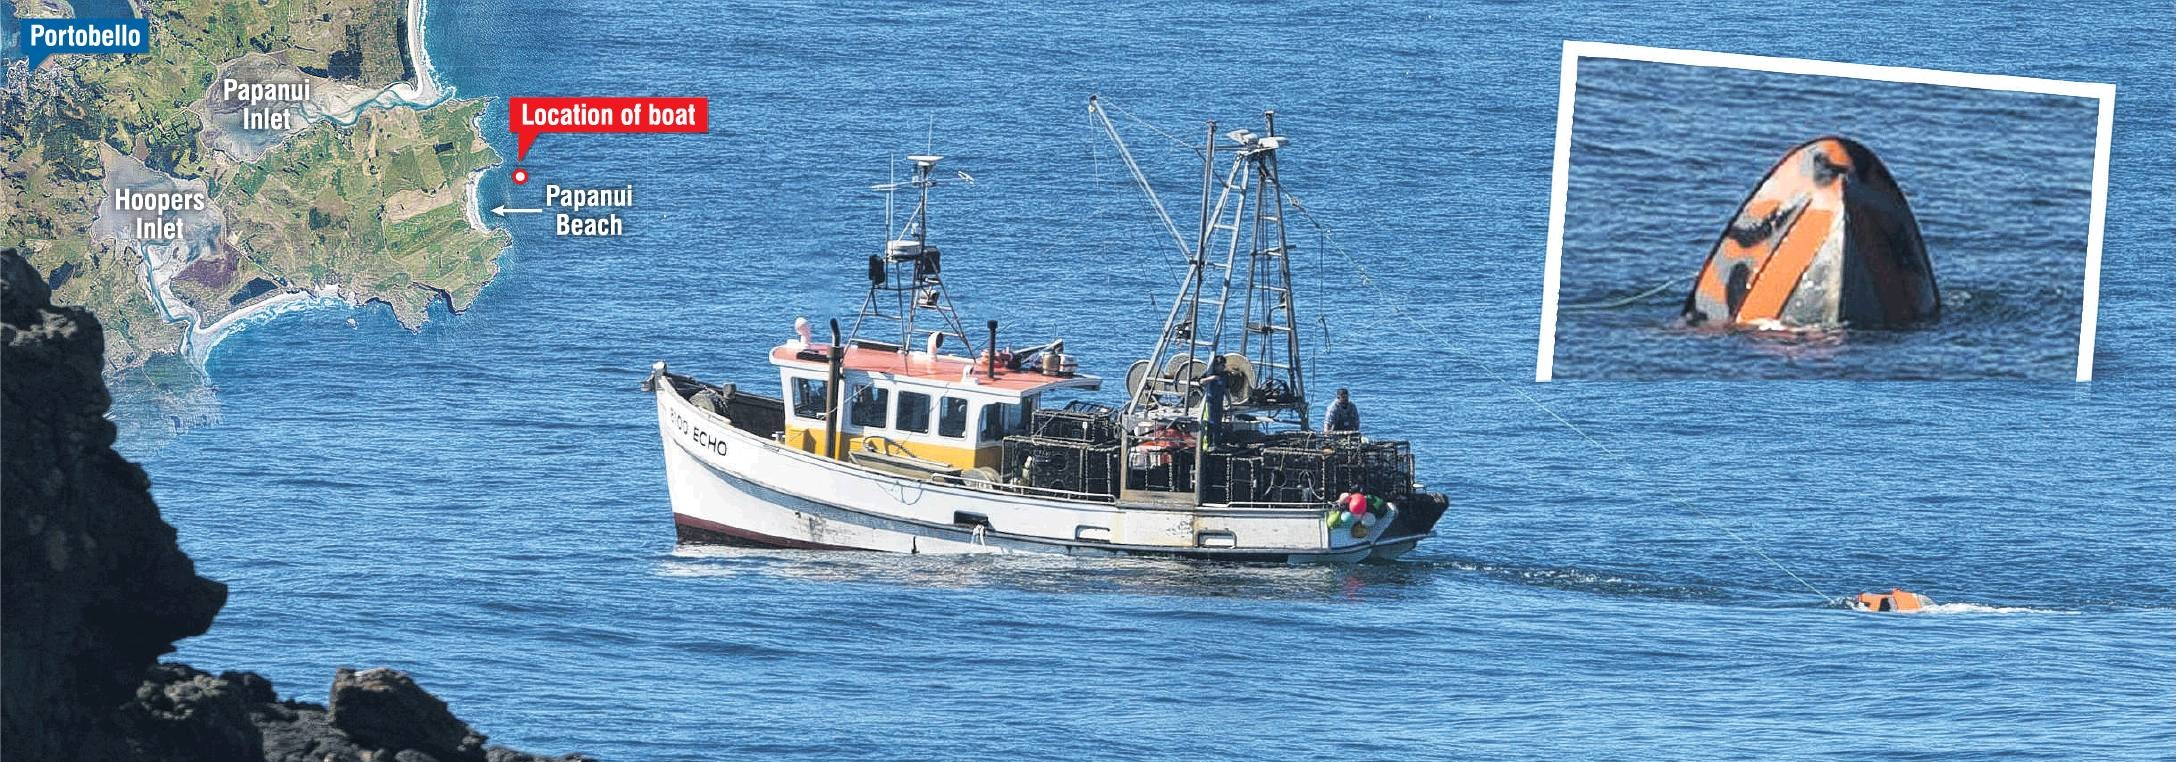 Commercial fishing boat Echo tows the submerged recreational boat back to Carey's Bay after it sank near Papanui Beach, on Otago Peninsula. Inset: The bow of the sinking boat points skyward off the Dunedin coastline yesterday. Two minutes later, it was fu